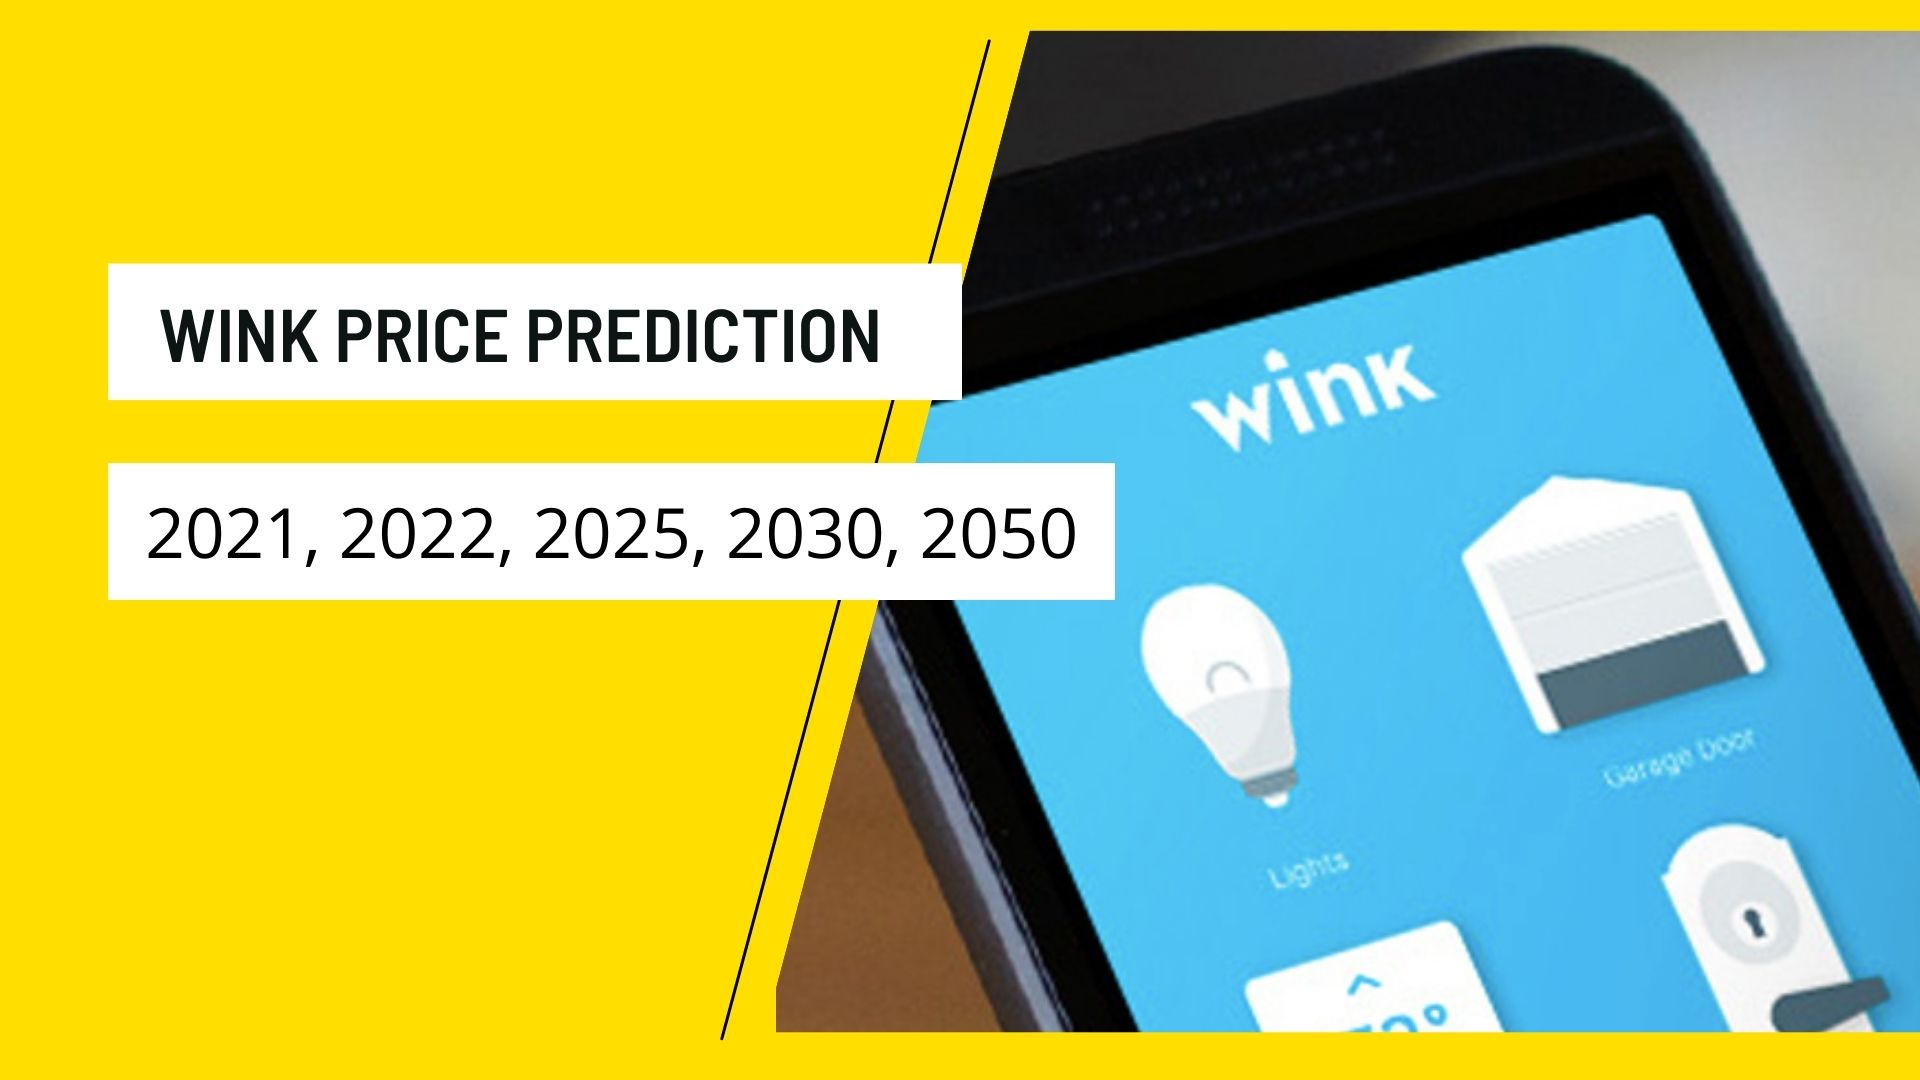 WINk Price Prediction